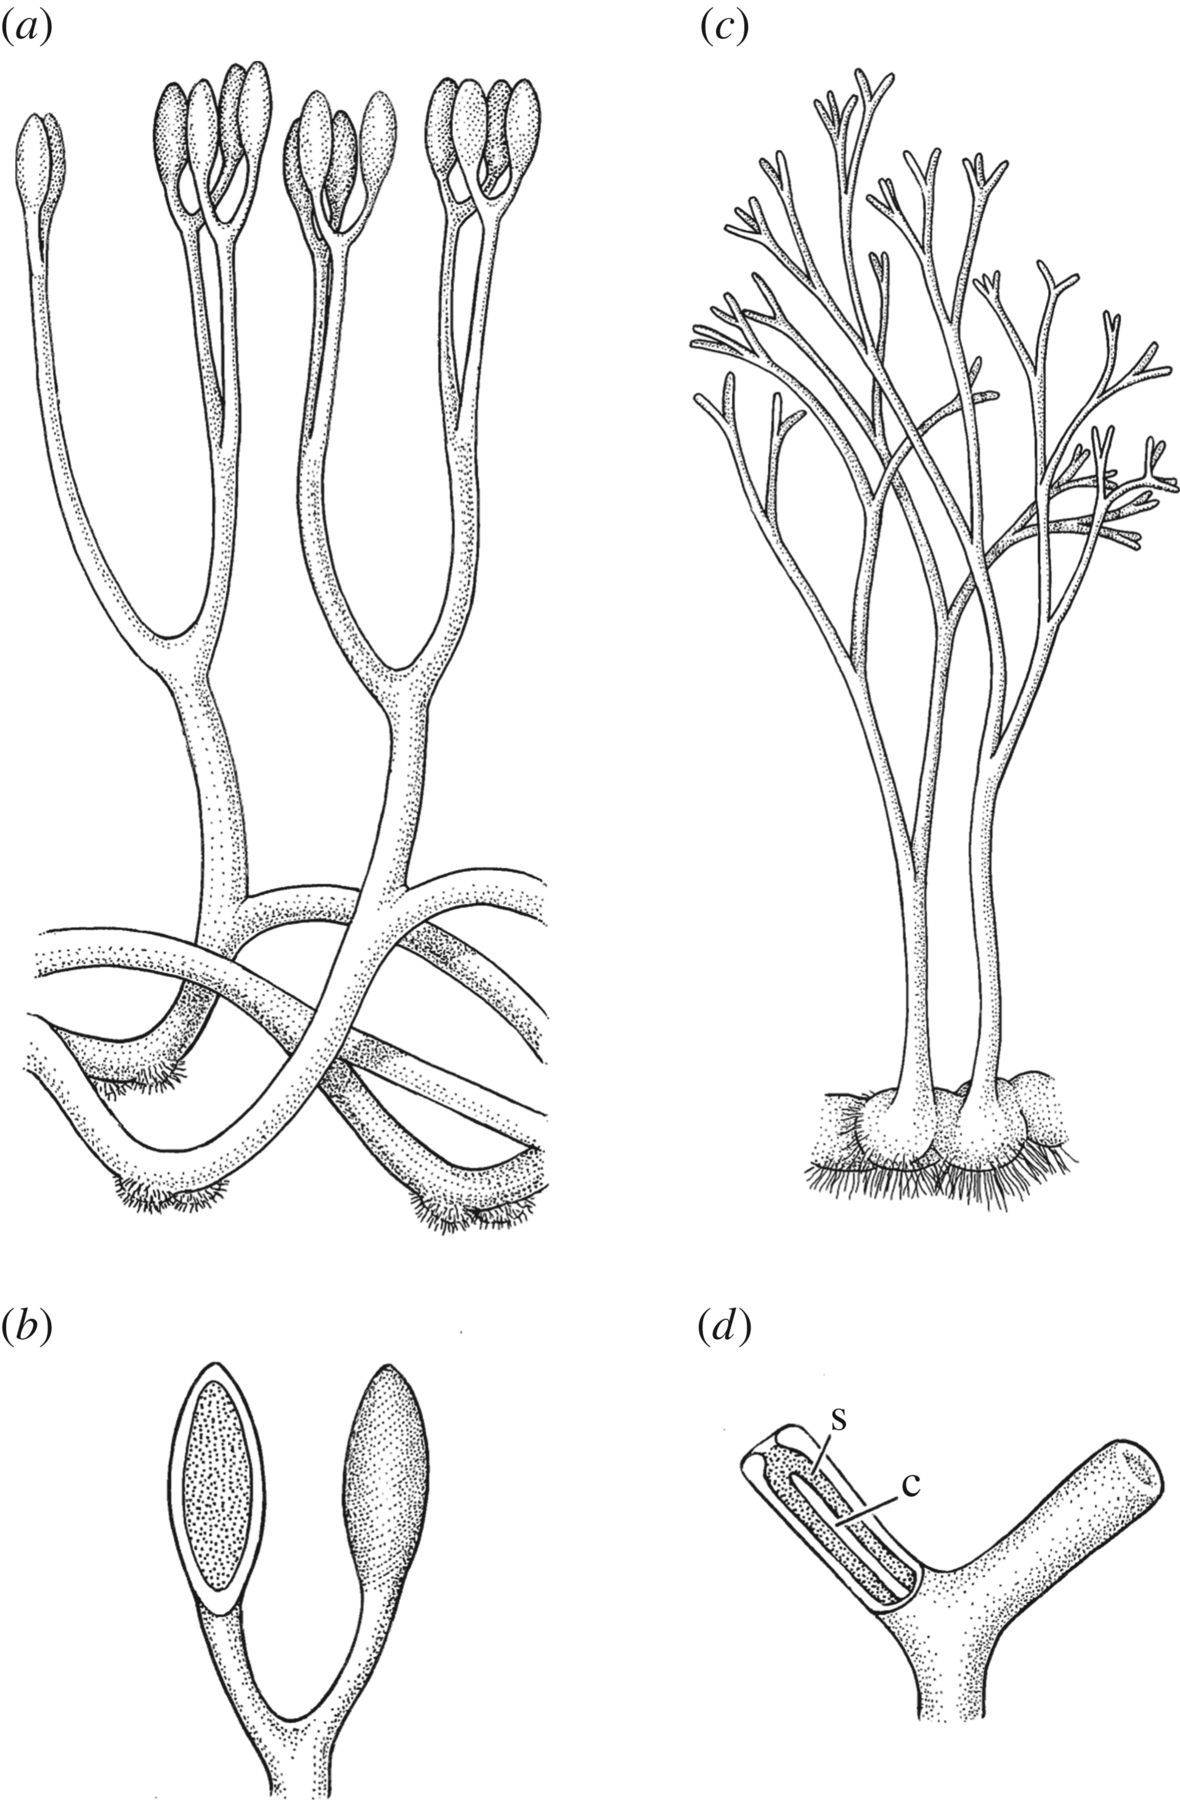 Changing expressions: a hypothesis for the origin of the vascular